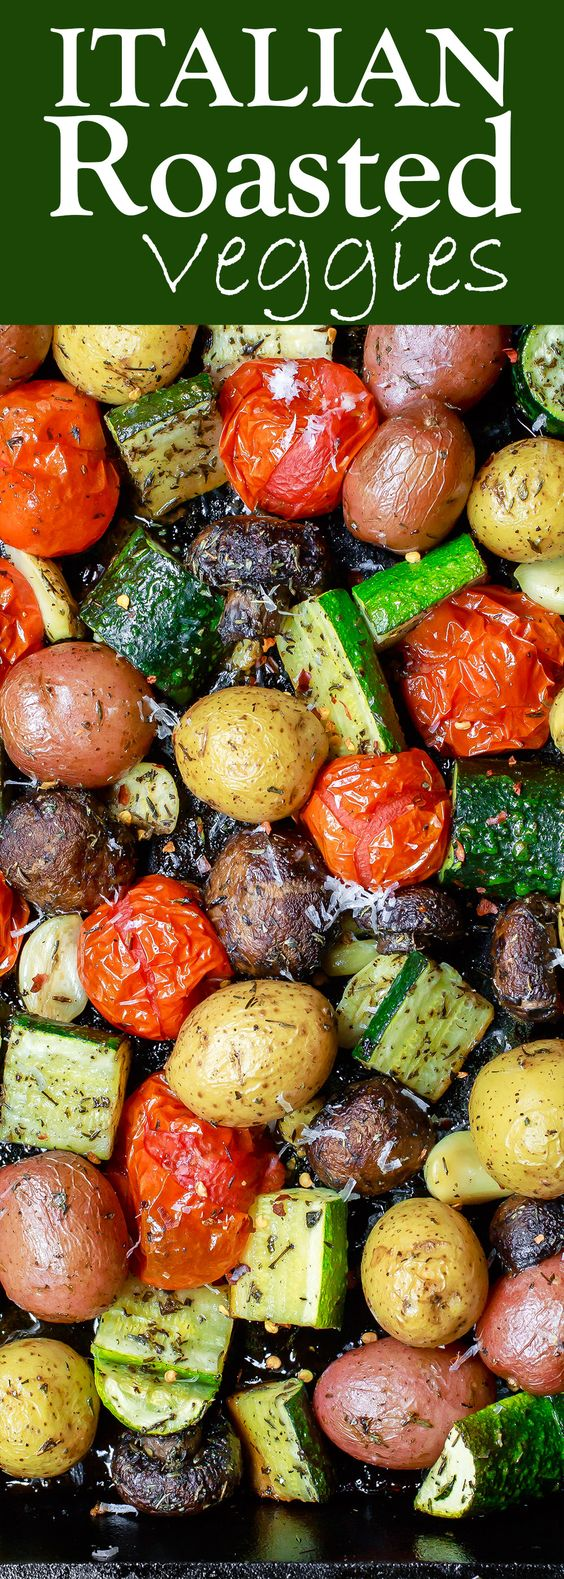 ITALIAN OVEN ROASTED VEGETABLES #italianfood #roasted #vegetables #vegetarianrecipes #vegetarian #veggies #veganrecipes #vegan